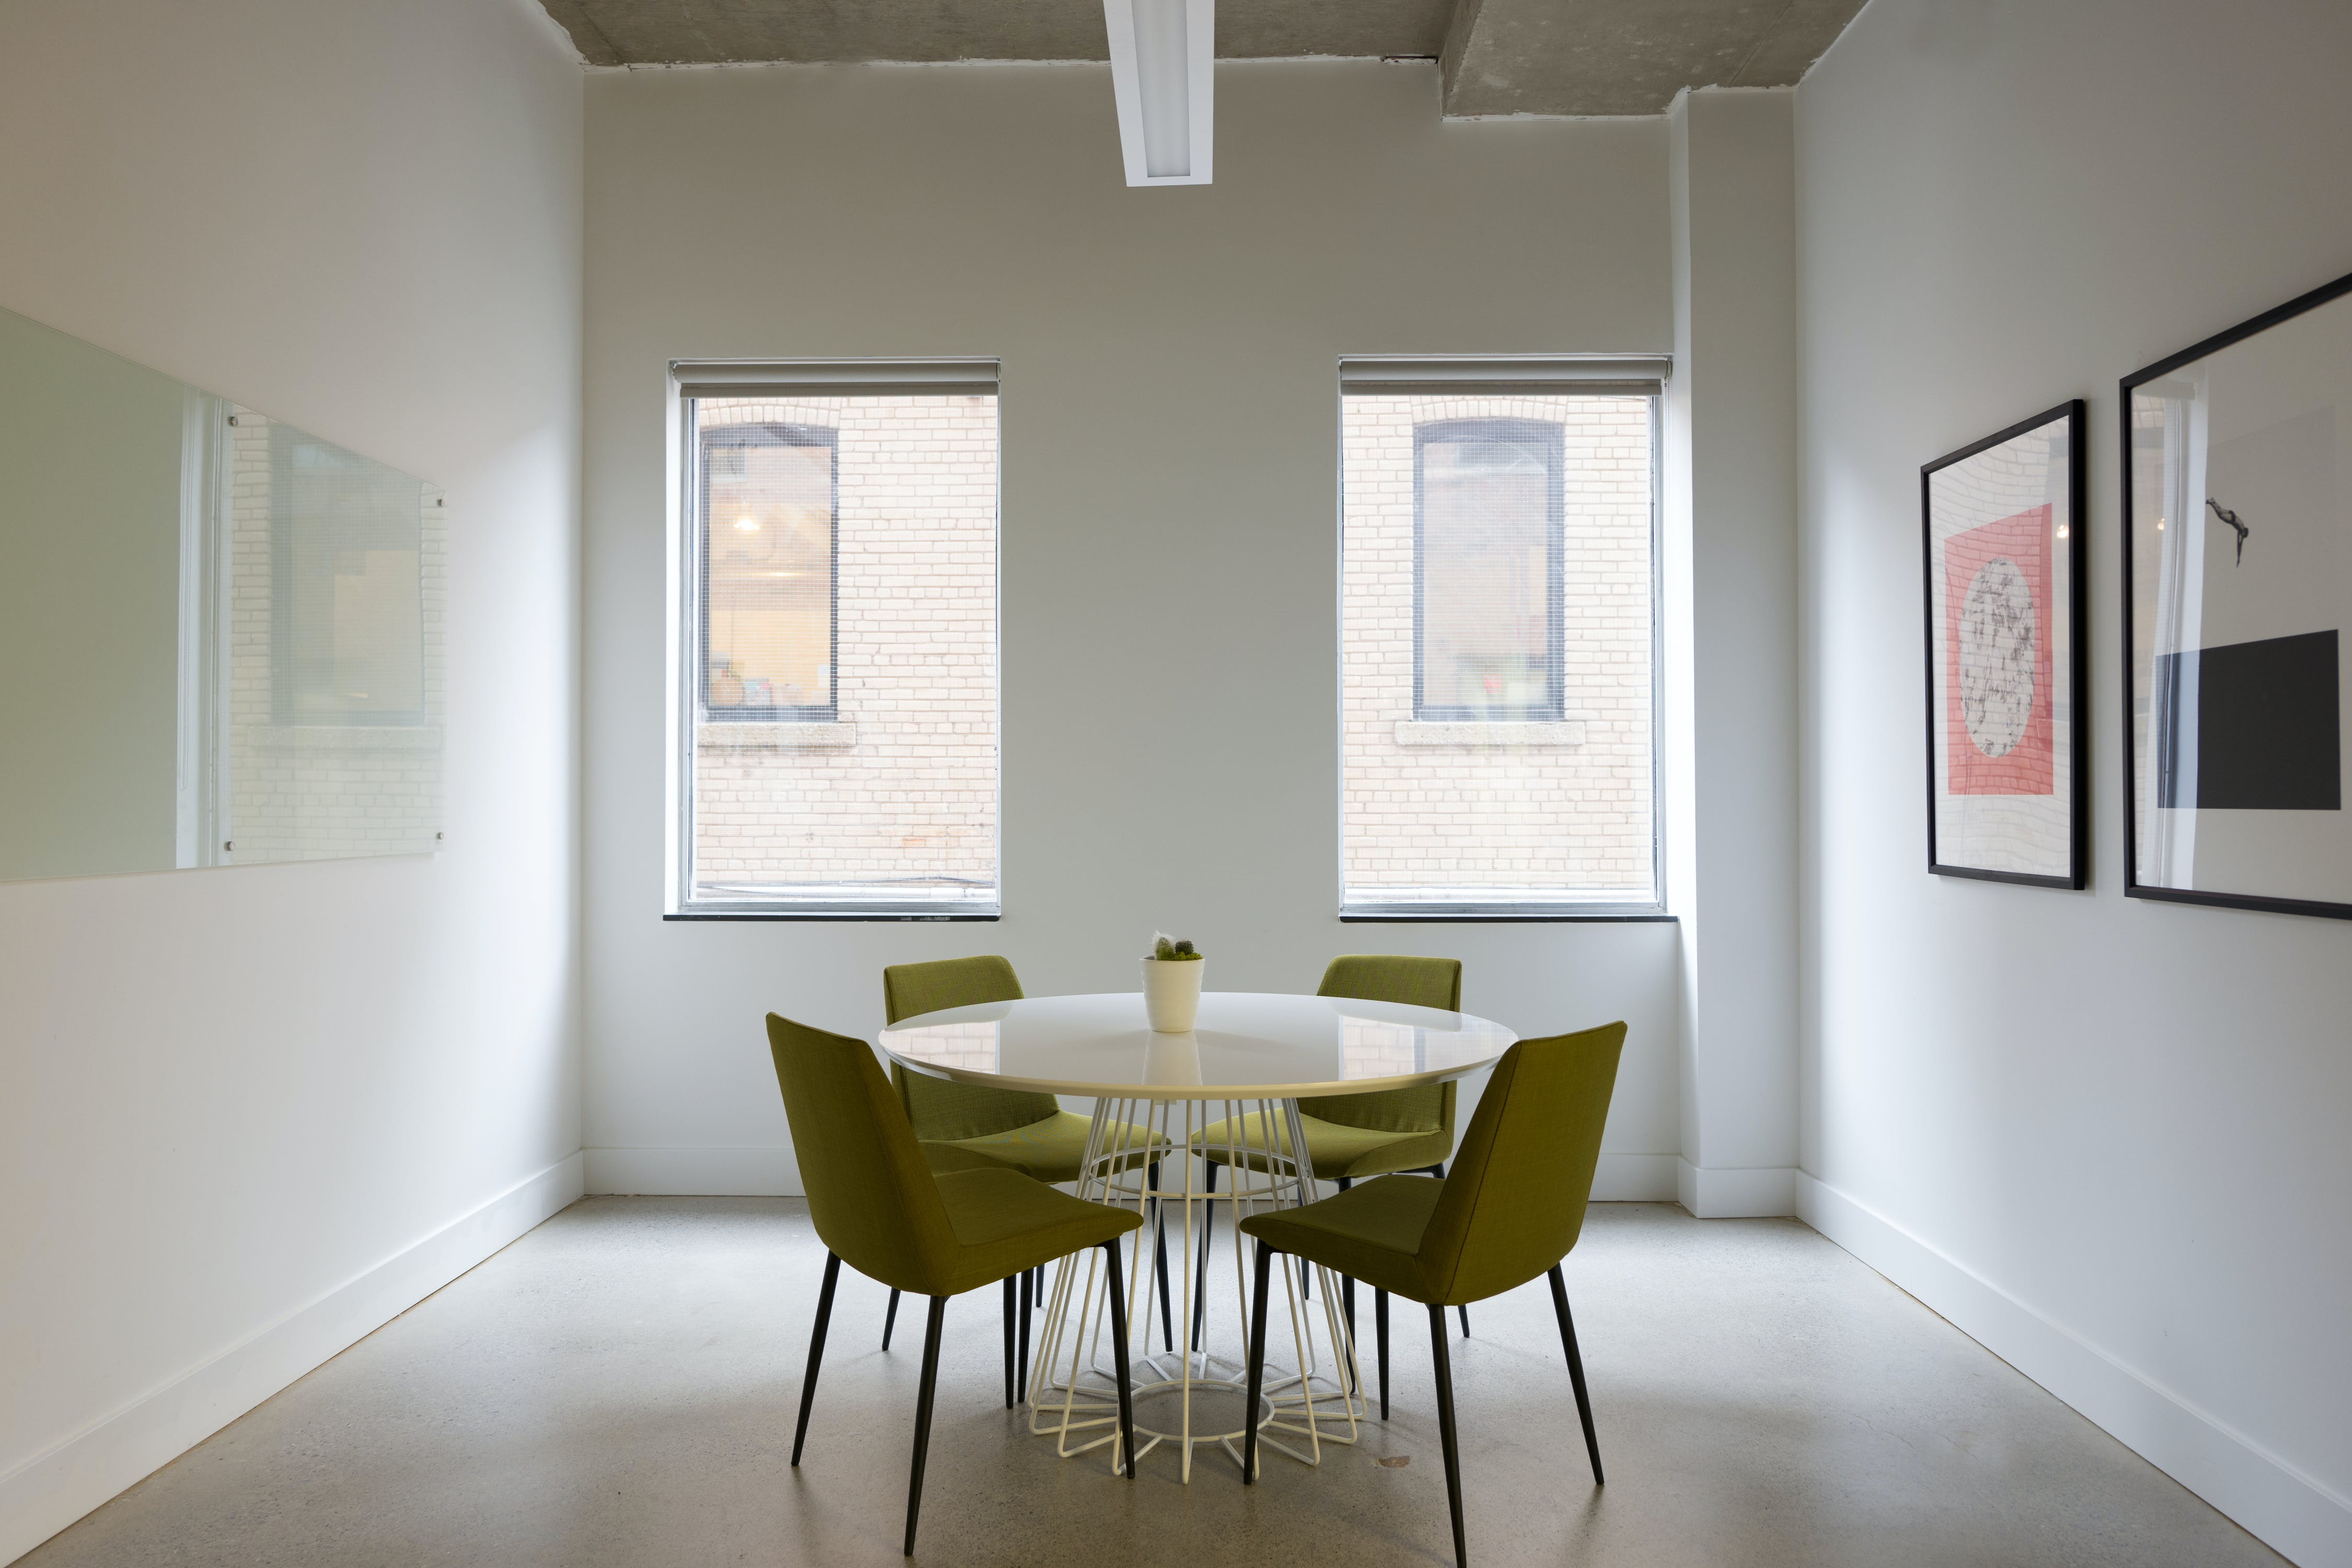 interview space at 425 Adelaide Street W.